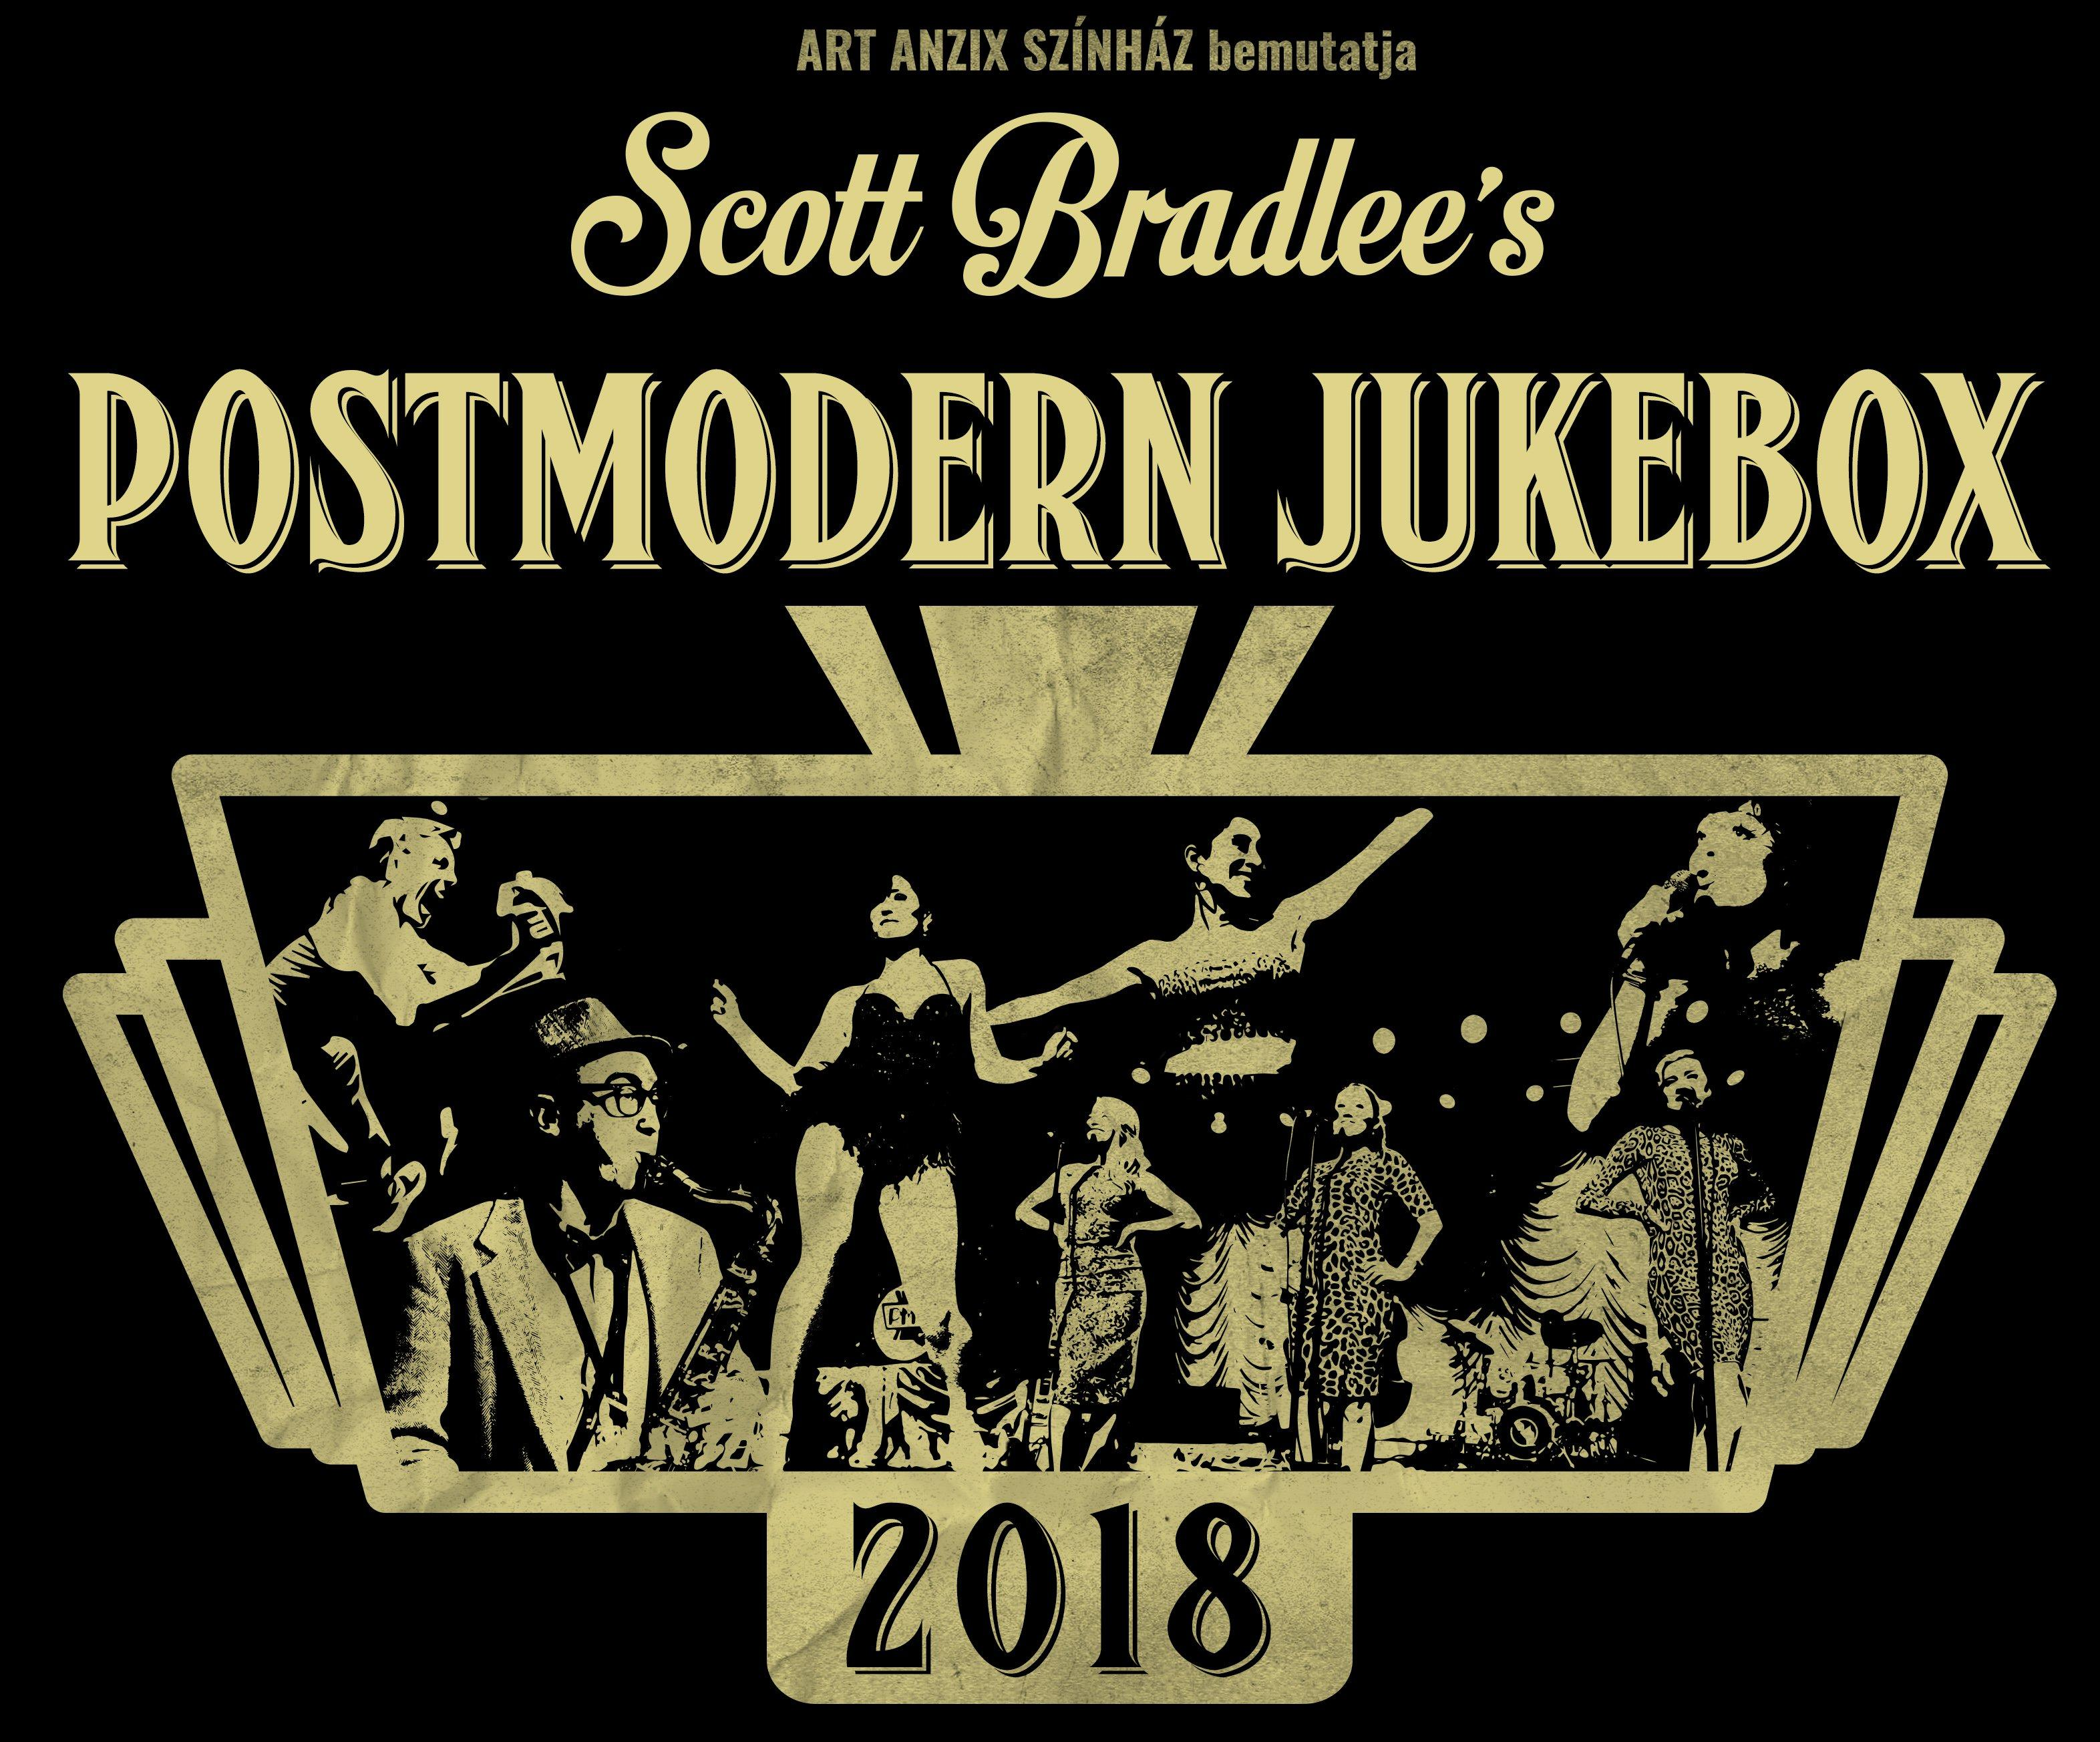 Tickets Available: Scott Bradlee's 'Postmodern Jukebox', Budapest Arena, 17 May